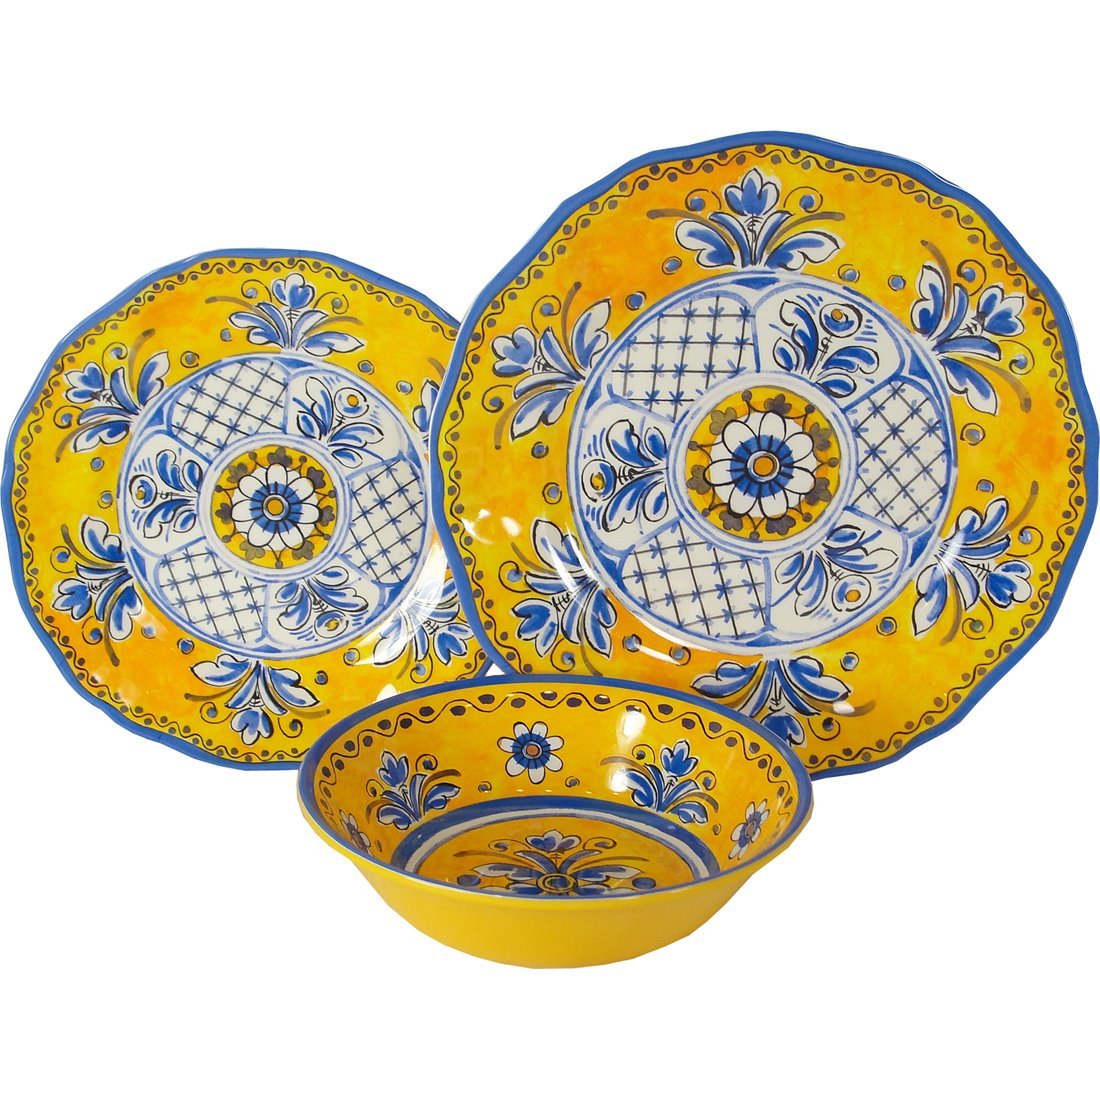 Amazon.com | Benidorm - Le Cadeaux Melamine Dinnerware 4 PC Serving Salad Plates Bowls  sc 1 st  Amazon.com & Amazon.com | Benidorm - Le Cadeaux Melamine Dinnerware 4 PC Serving ...